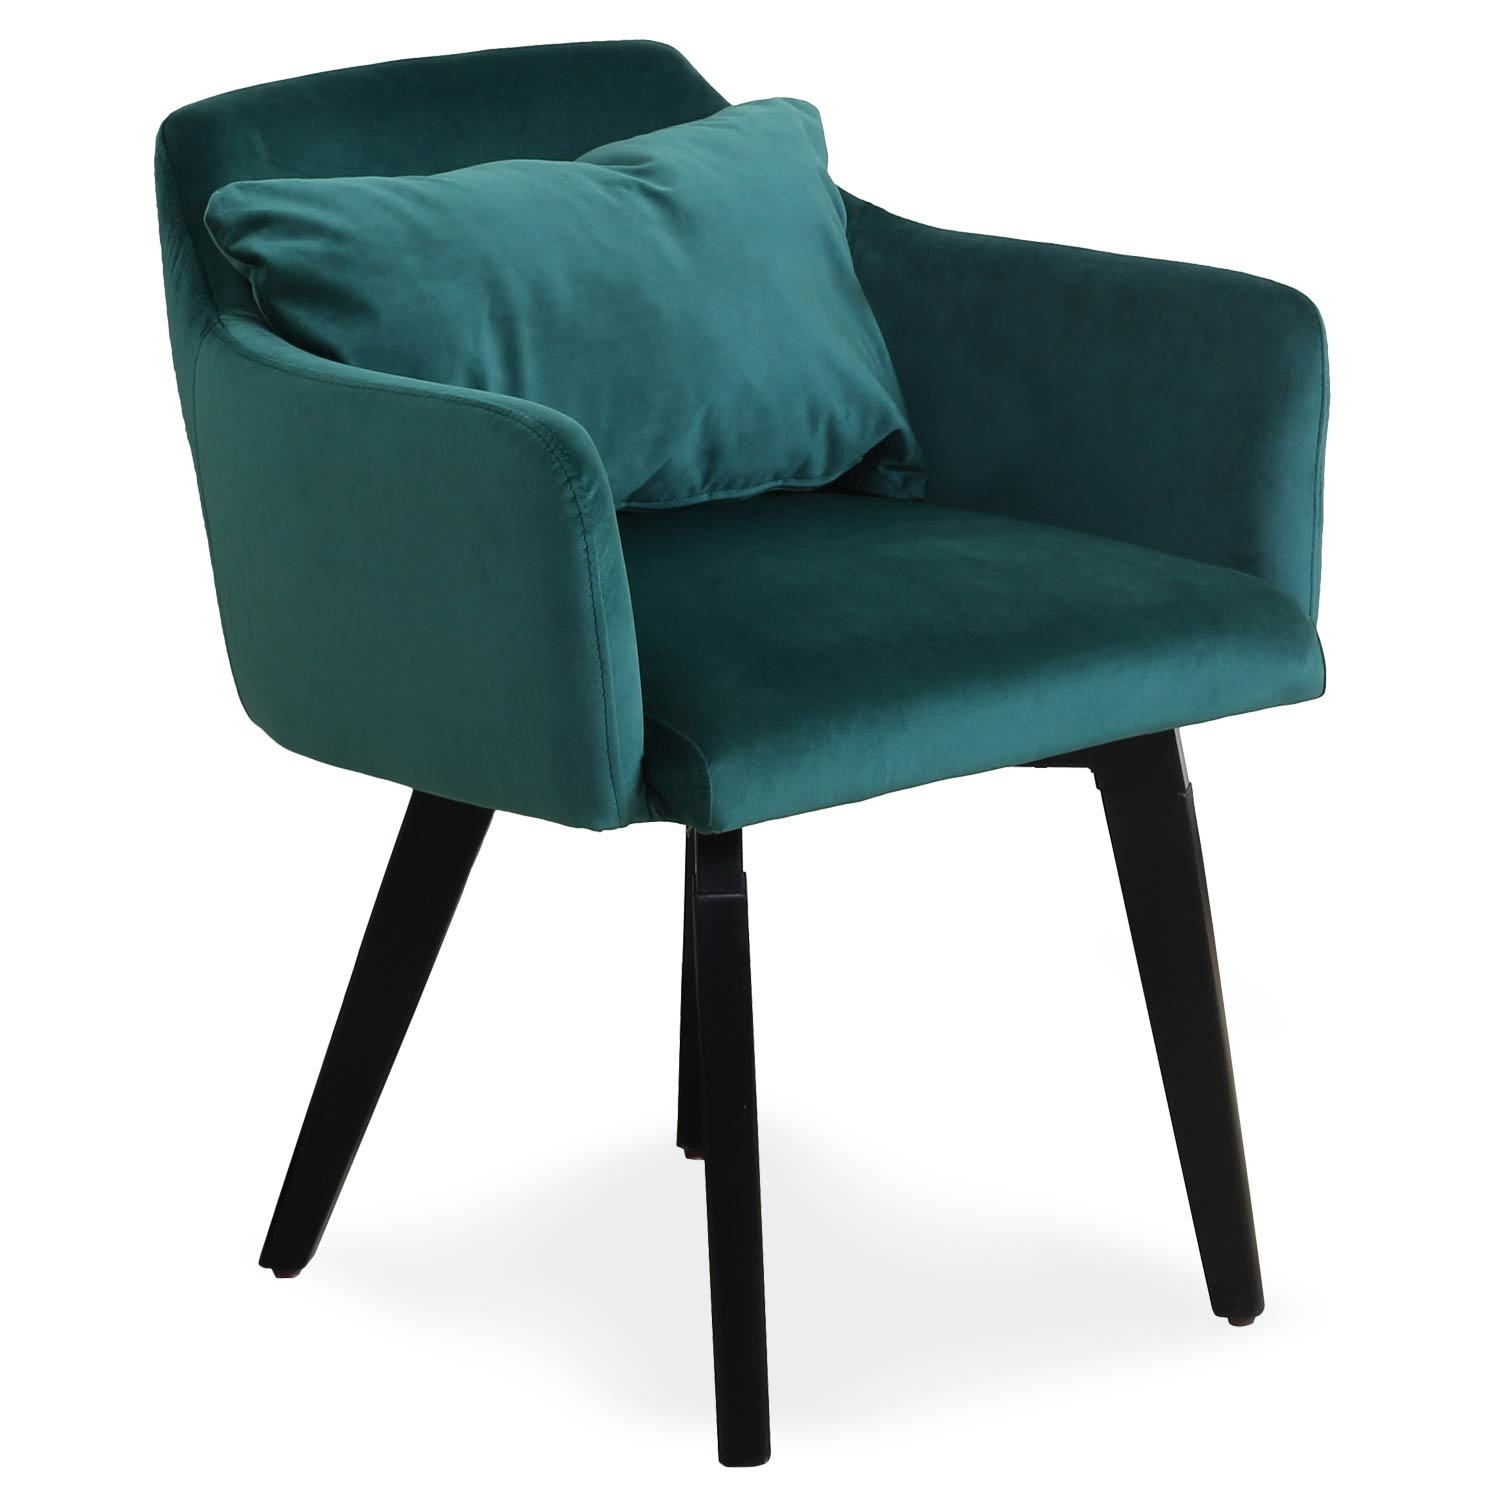 Chaise / fauteuil Gybson Velours Vert